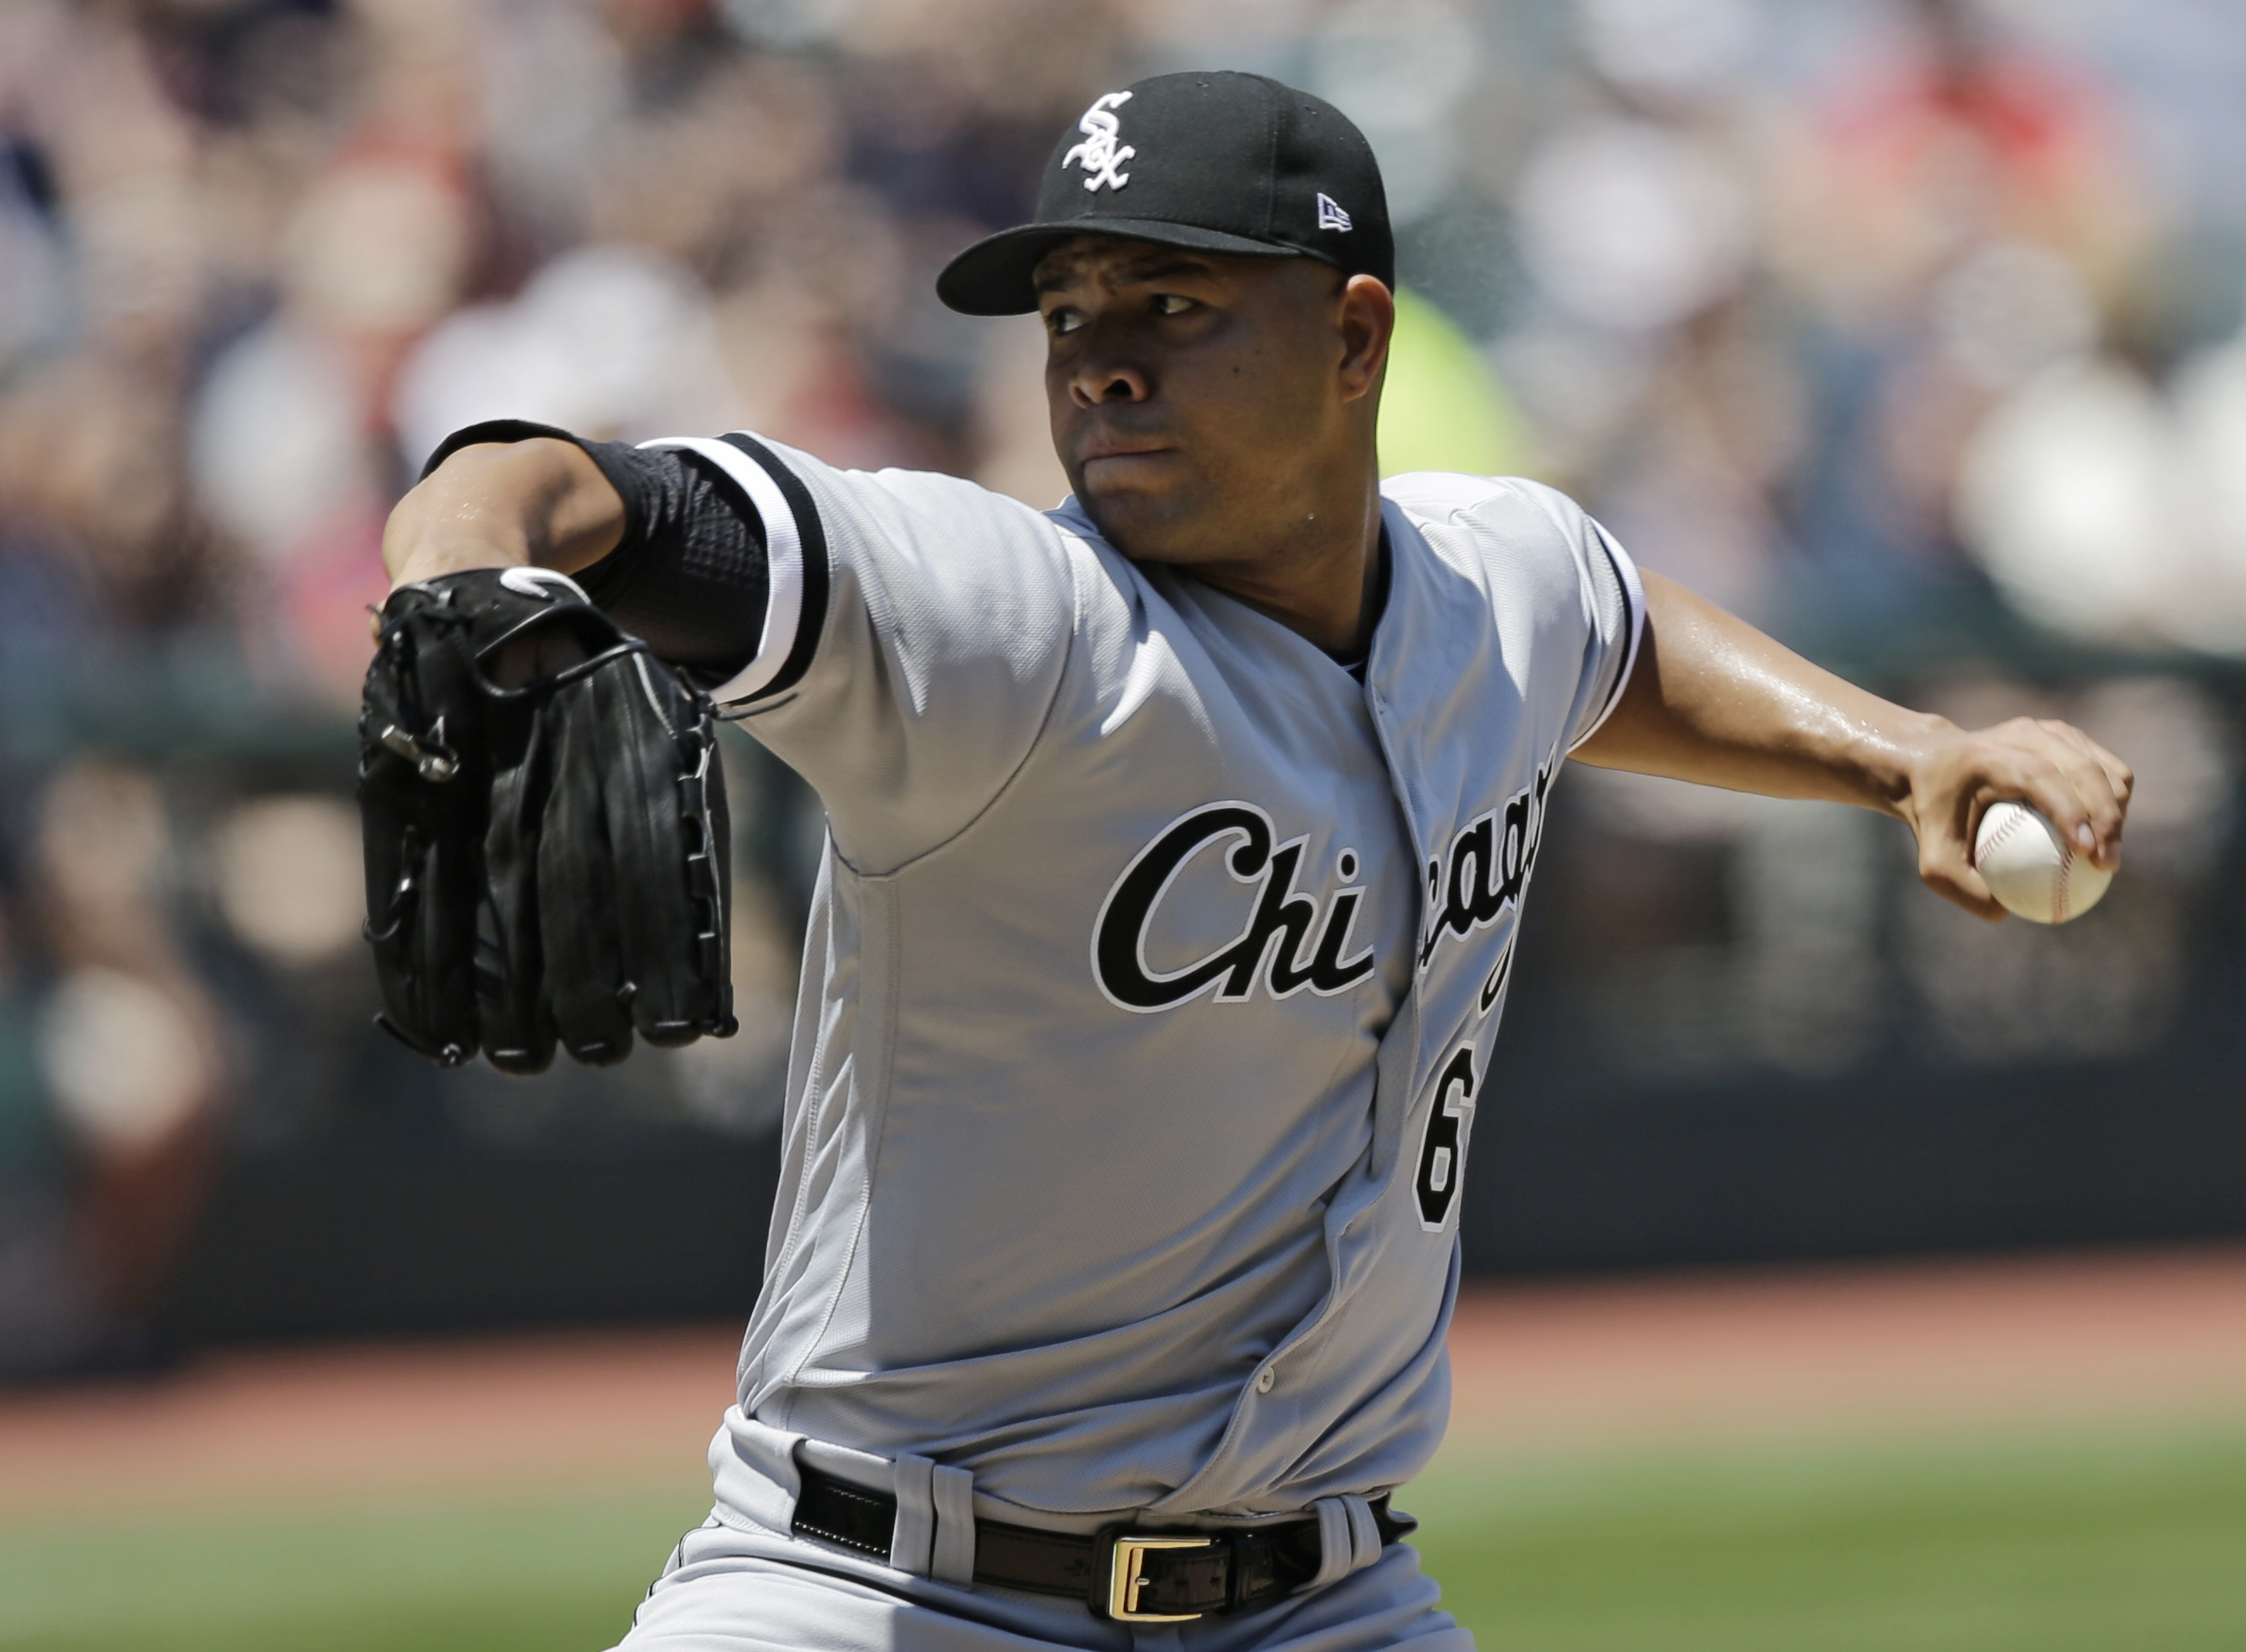 IN 2017, the White Sox traded pitcher Jose Quintana to the Cubs for outfielder Eloy Jimenez, right-handed pitcher Dylan Cease, and infielders Matt Rose and Bryant Flete.